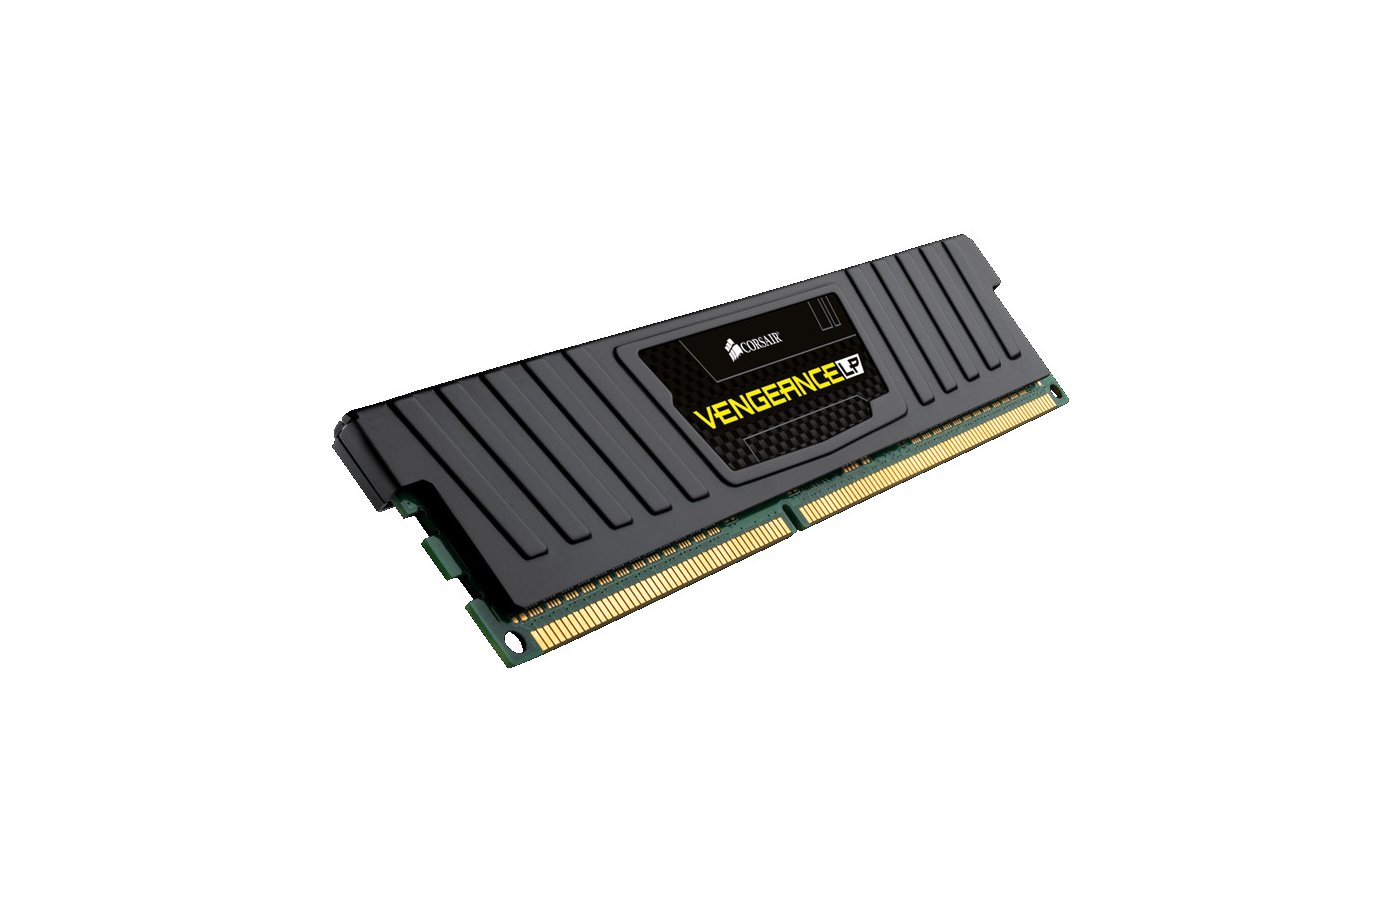 Оперативная память Corsair CML8GX3M1A1600C10 RTL PC3-12800 DDR3 8Gb 1600MHz CL10